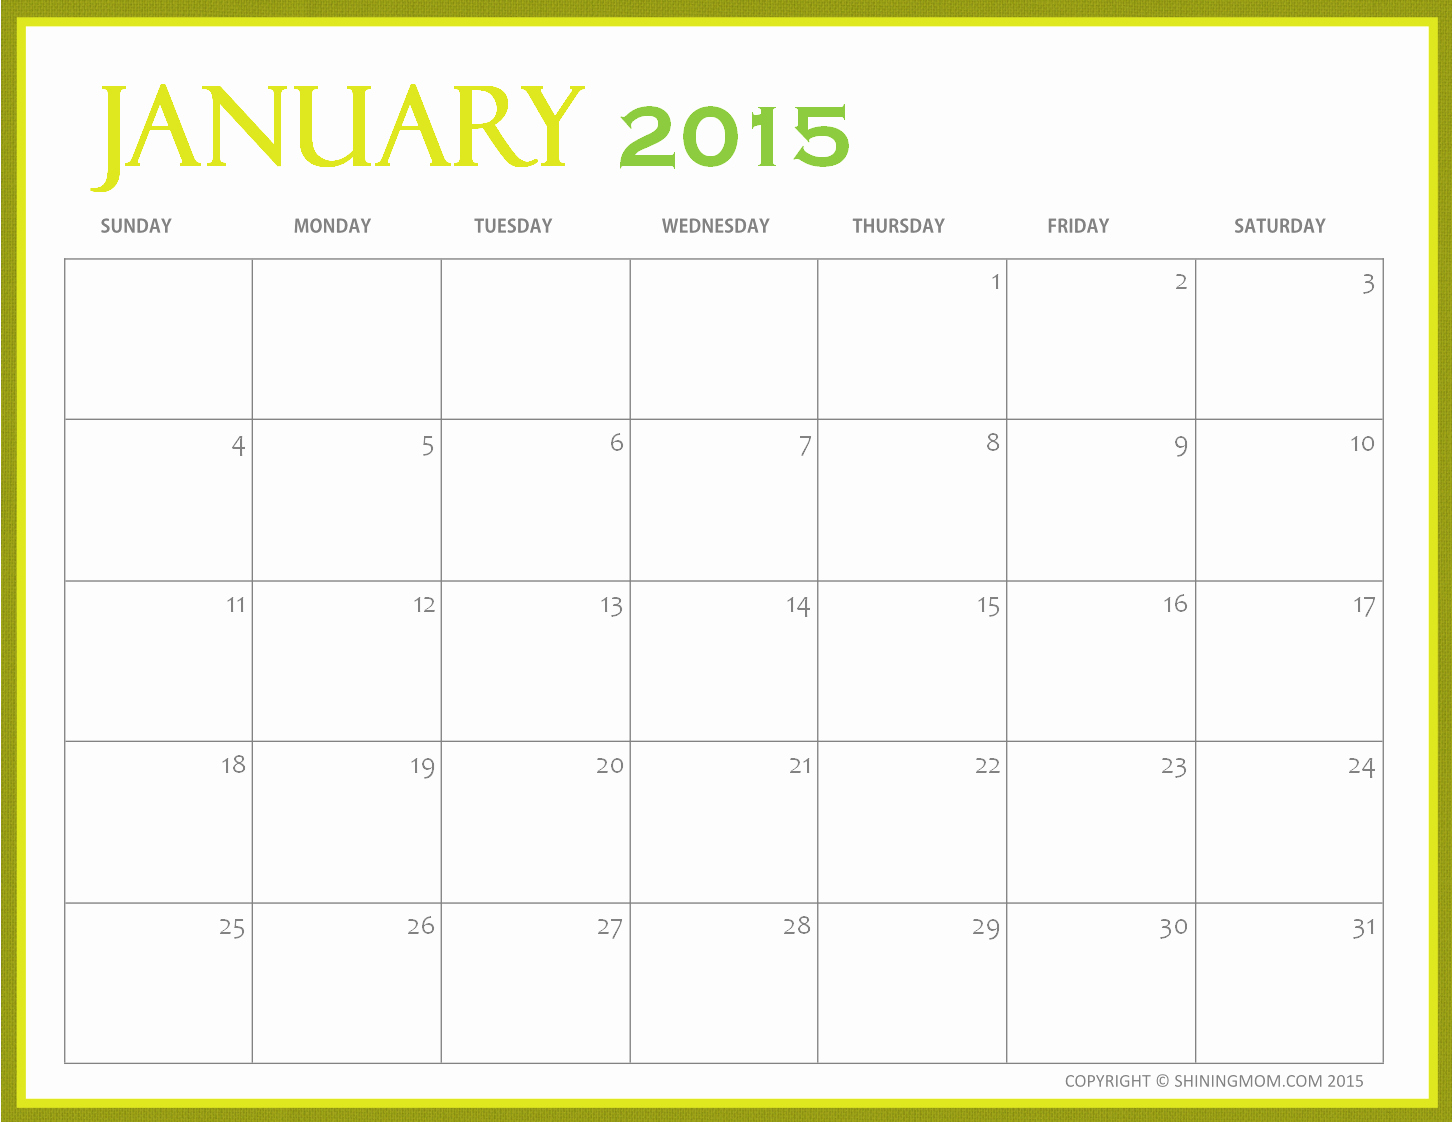 Quarterly Calendar Template 2015 Beautiful Free Printable 2015 Monthly Calendar – 2017 Printable Calendar